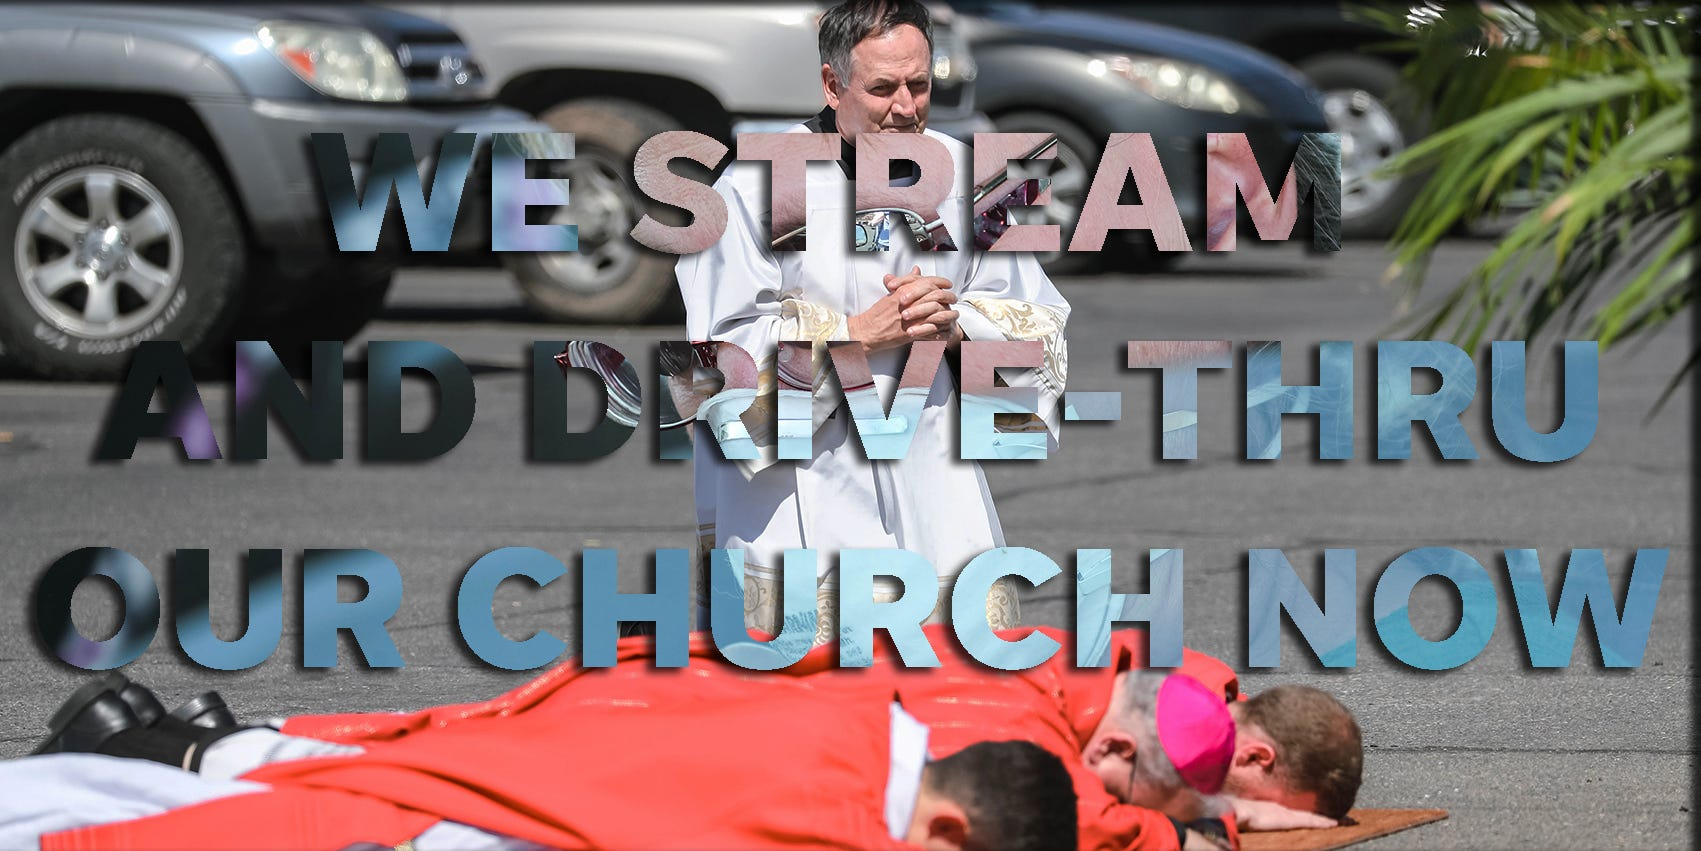 We stream and drive-thru our church now